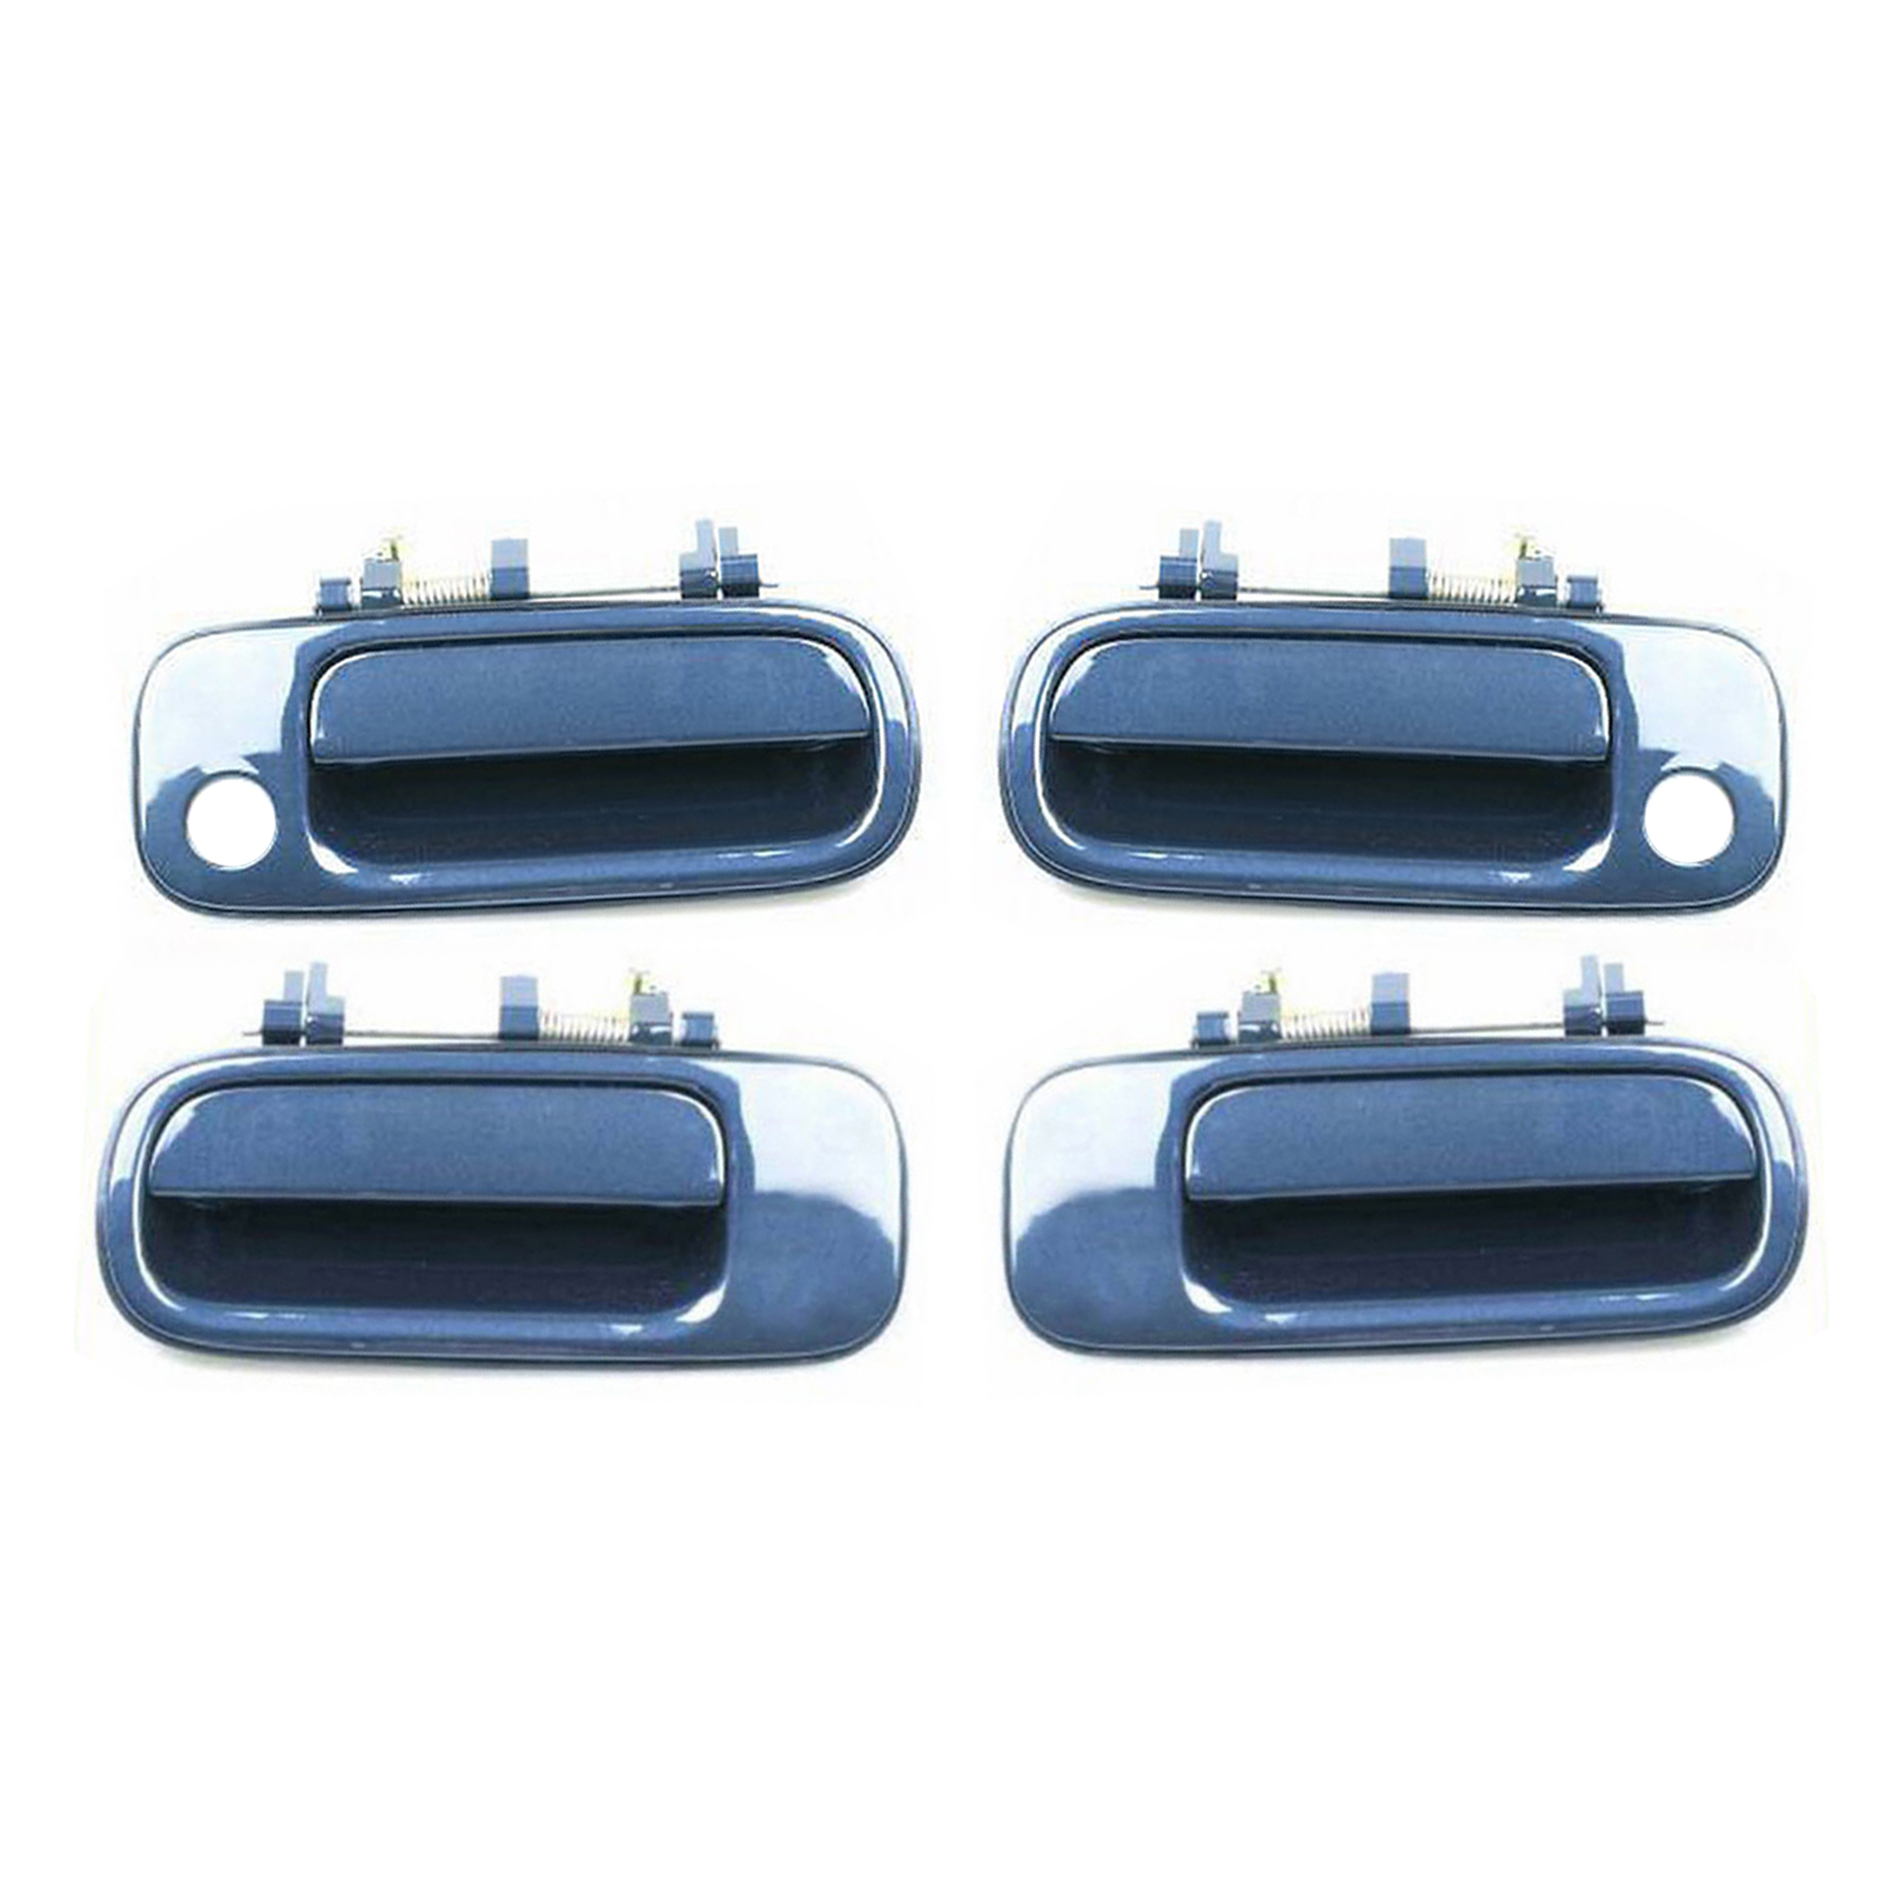 Outside Door Handle For Toyota Camry 1992 1996 Blue Haze Pearl 8j6 Front Rear Ebay